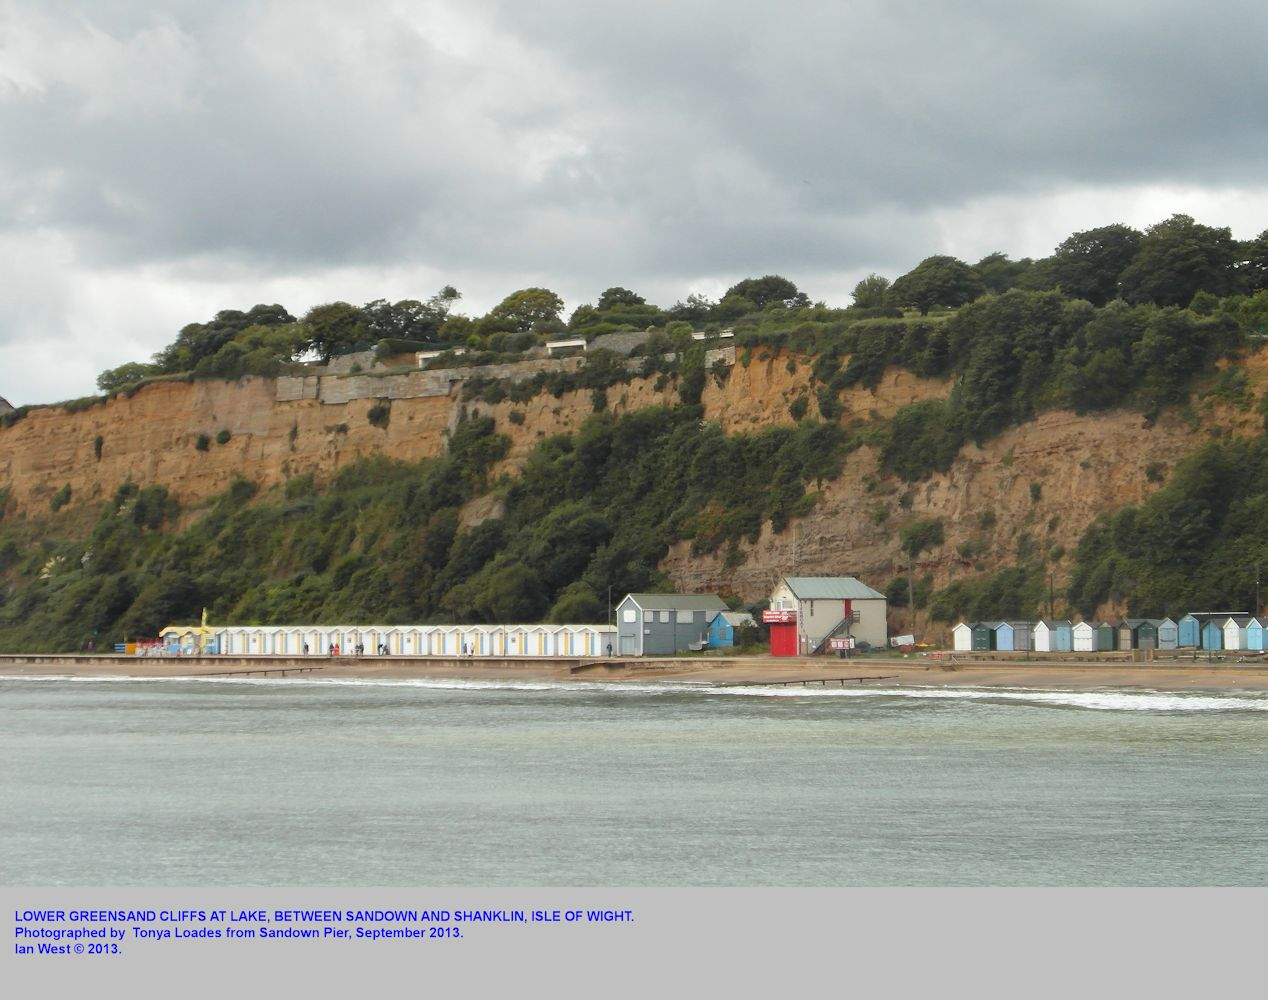 Ferruginous Sands of the Lower Greensand at Lake, between Sandown and Shanklin, Isle of Wight, September 2013